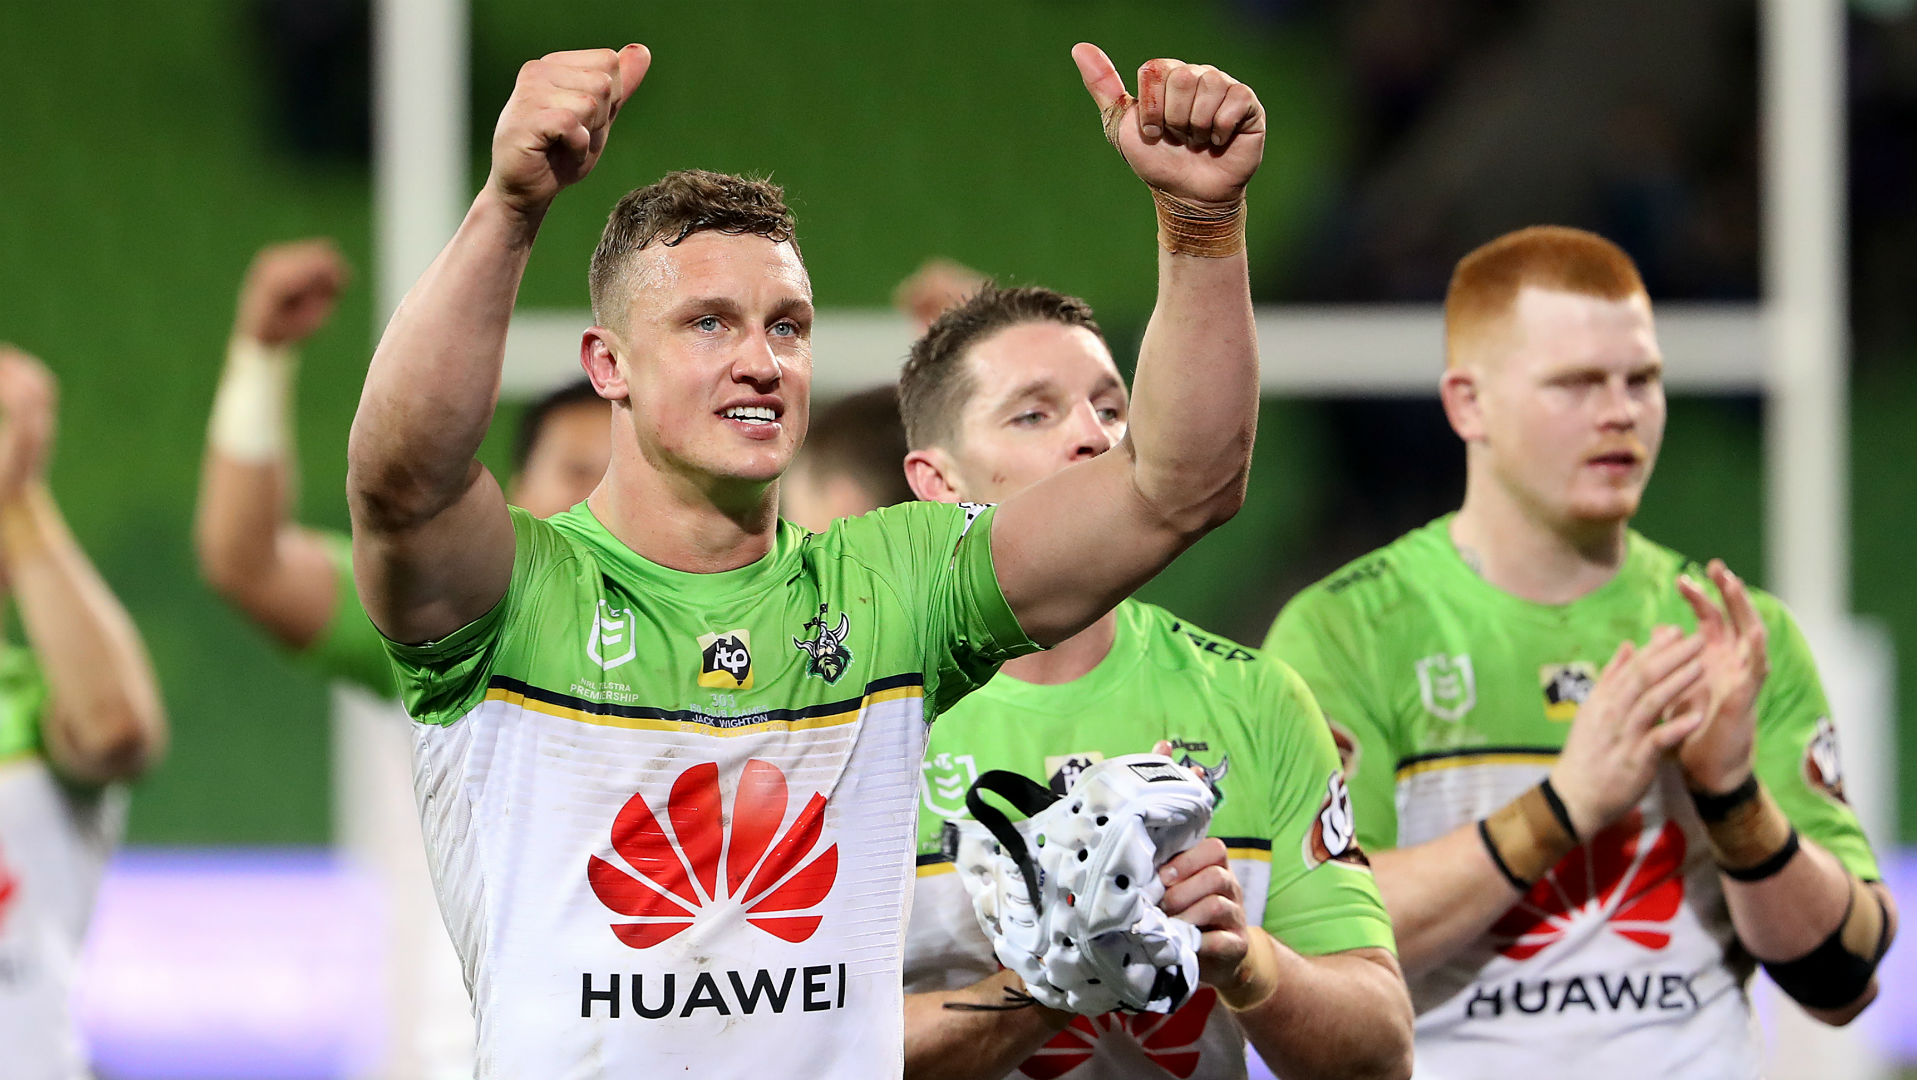 Raiders in remarkable comeback at Storm, Knights hammer Cowboys to stop the rot